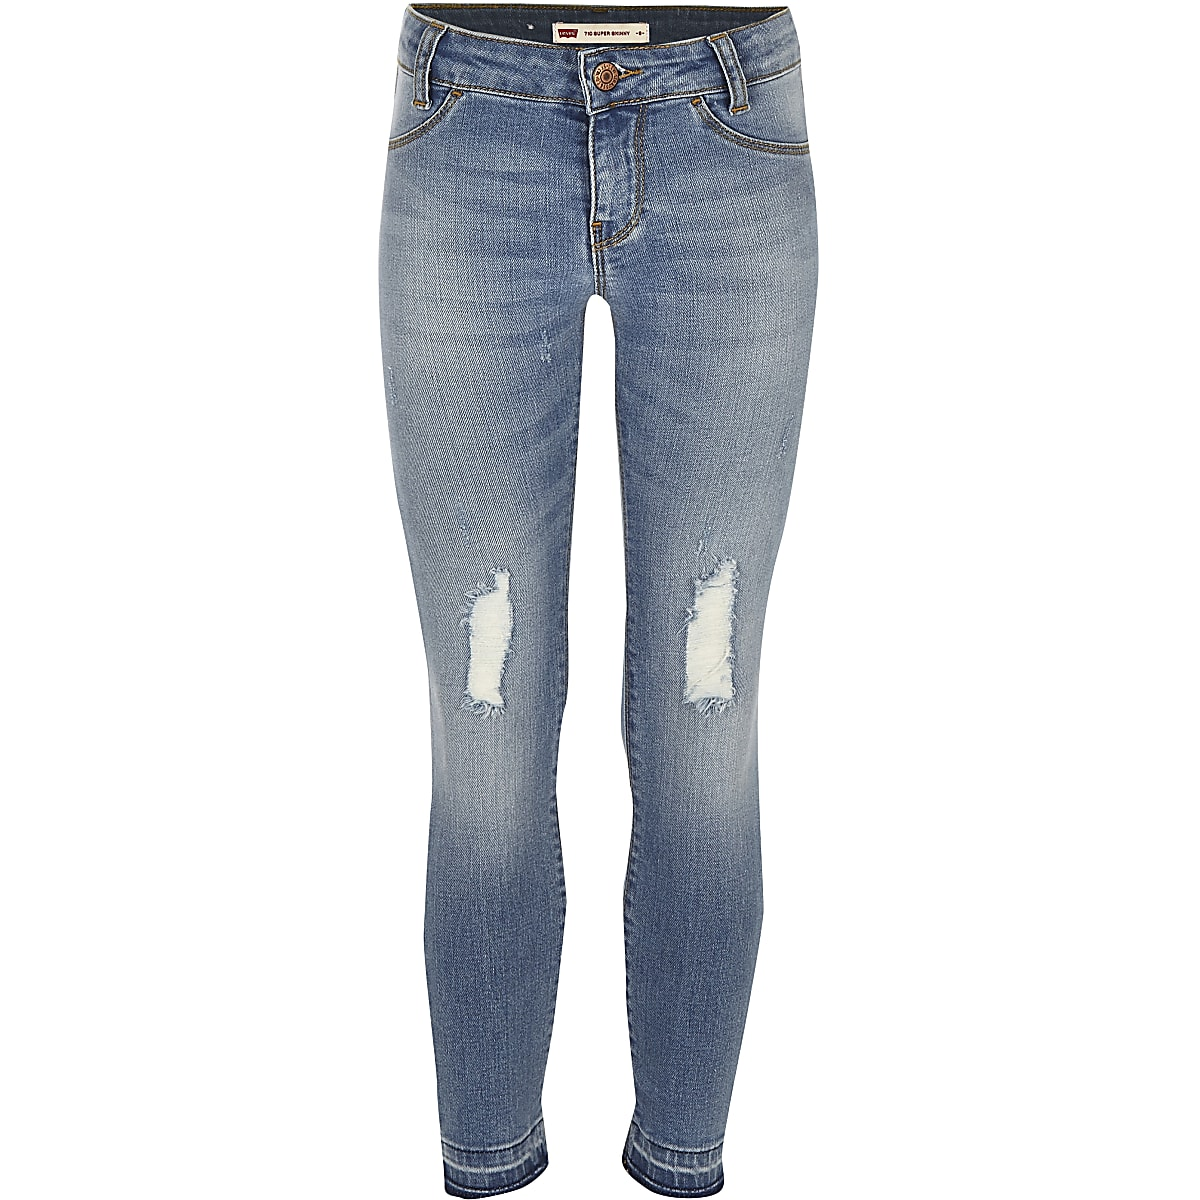 Girls Levi's blue ripped jeans